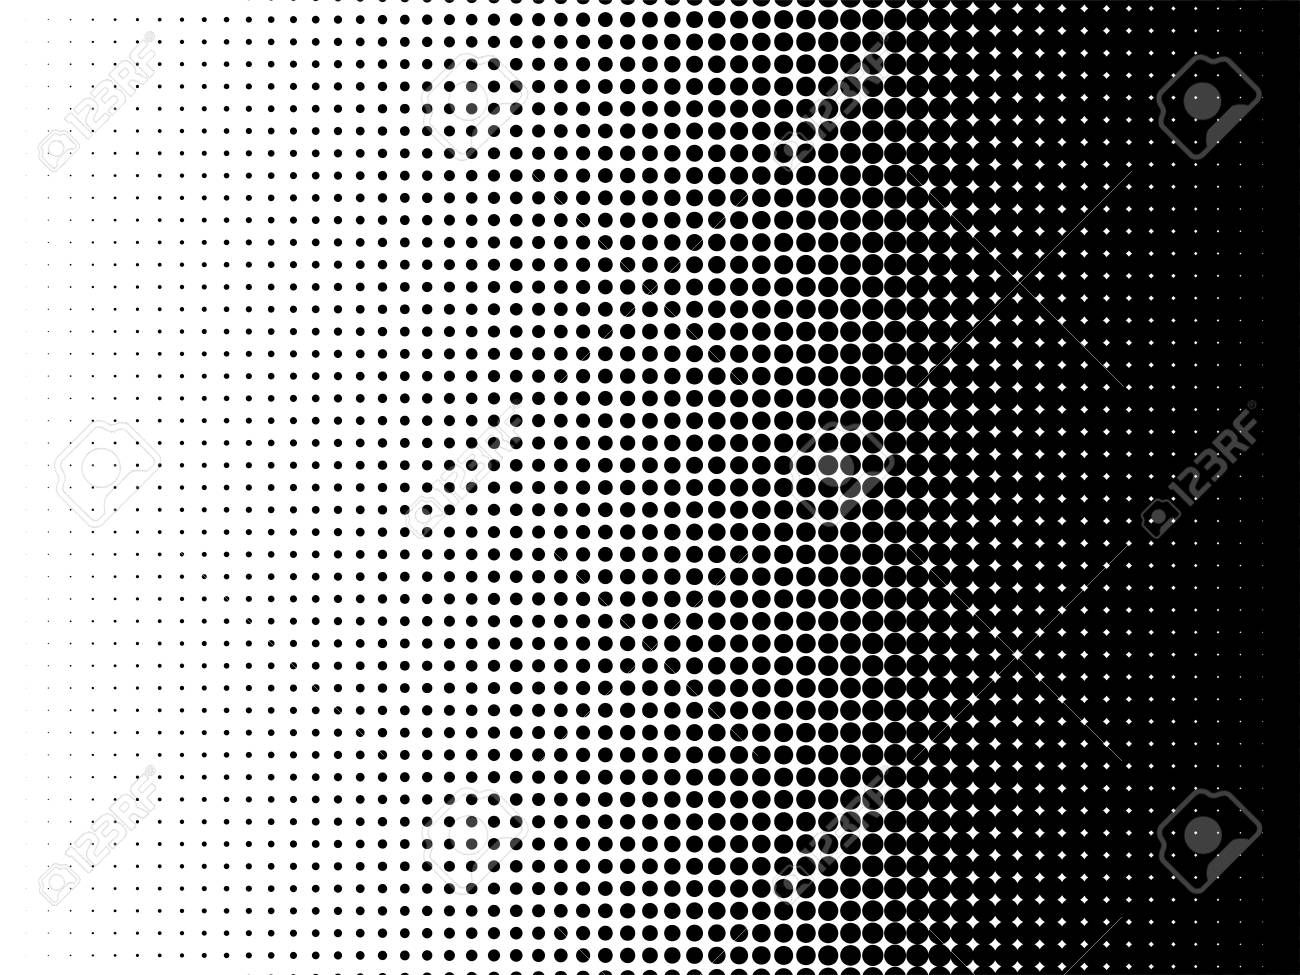 Radial Halftone Pattern Texture Vector Black And White Radial Dot Gradient Background For Retro Vintage Wallpaper Graphic Effe Texturen Muster Ideen Struktur